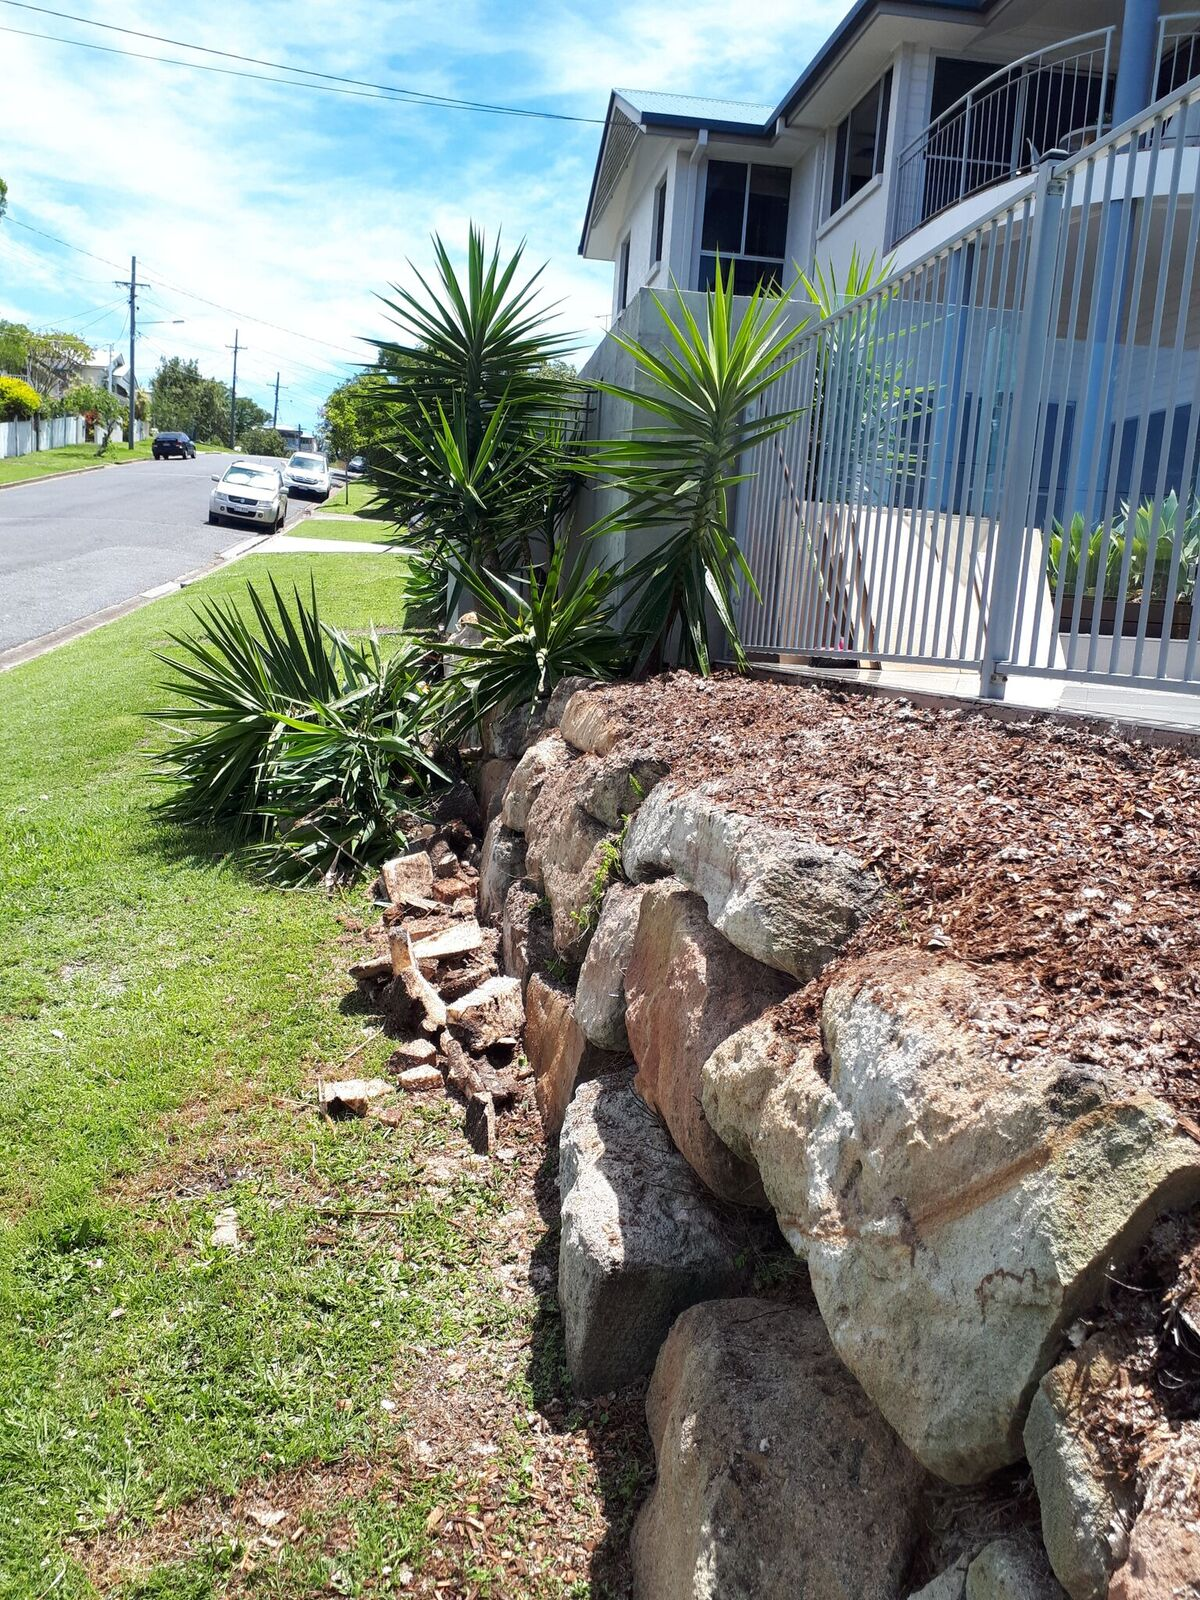 Stump Grinding Brisbane City by www.allaccess-stumpgrinding.com.au